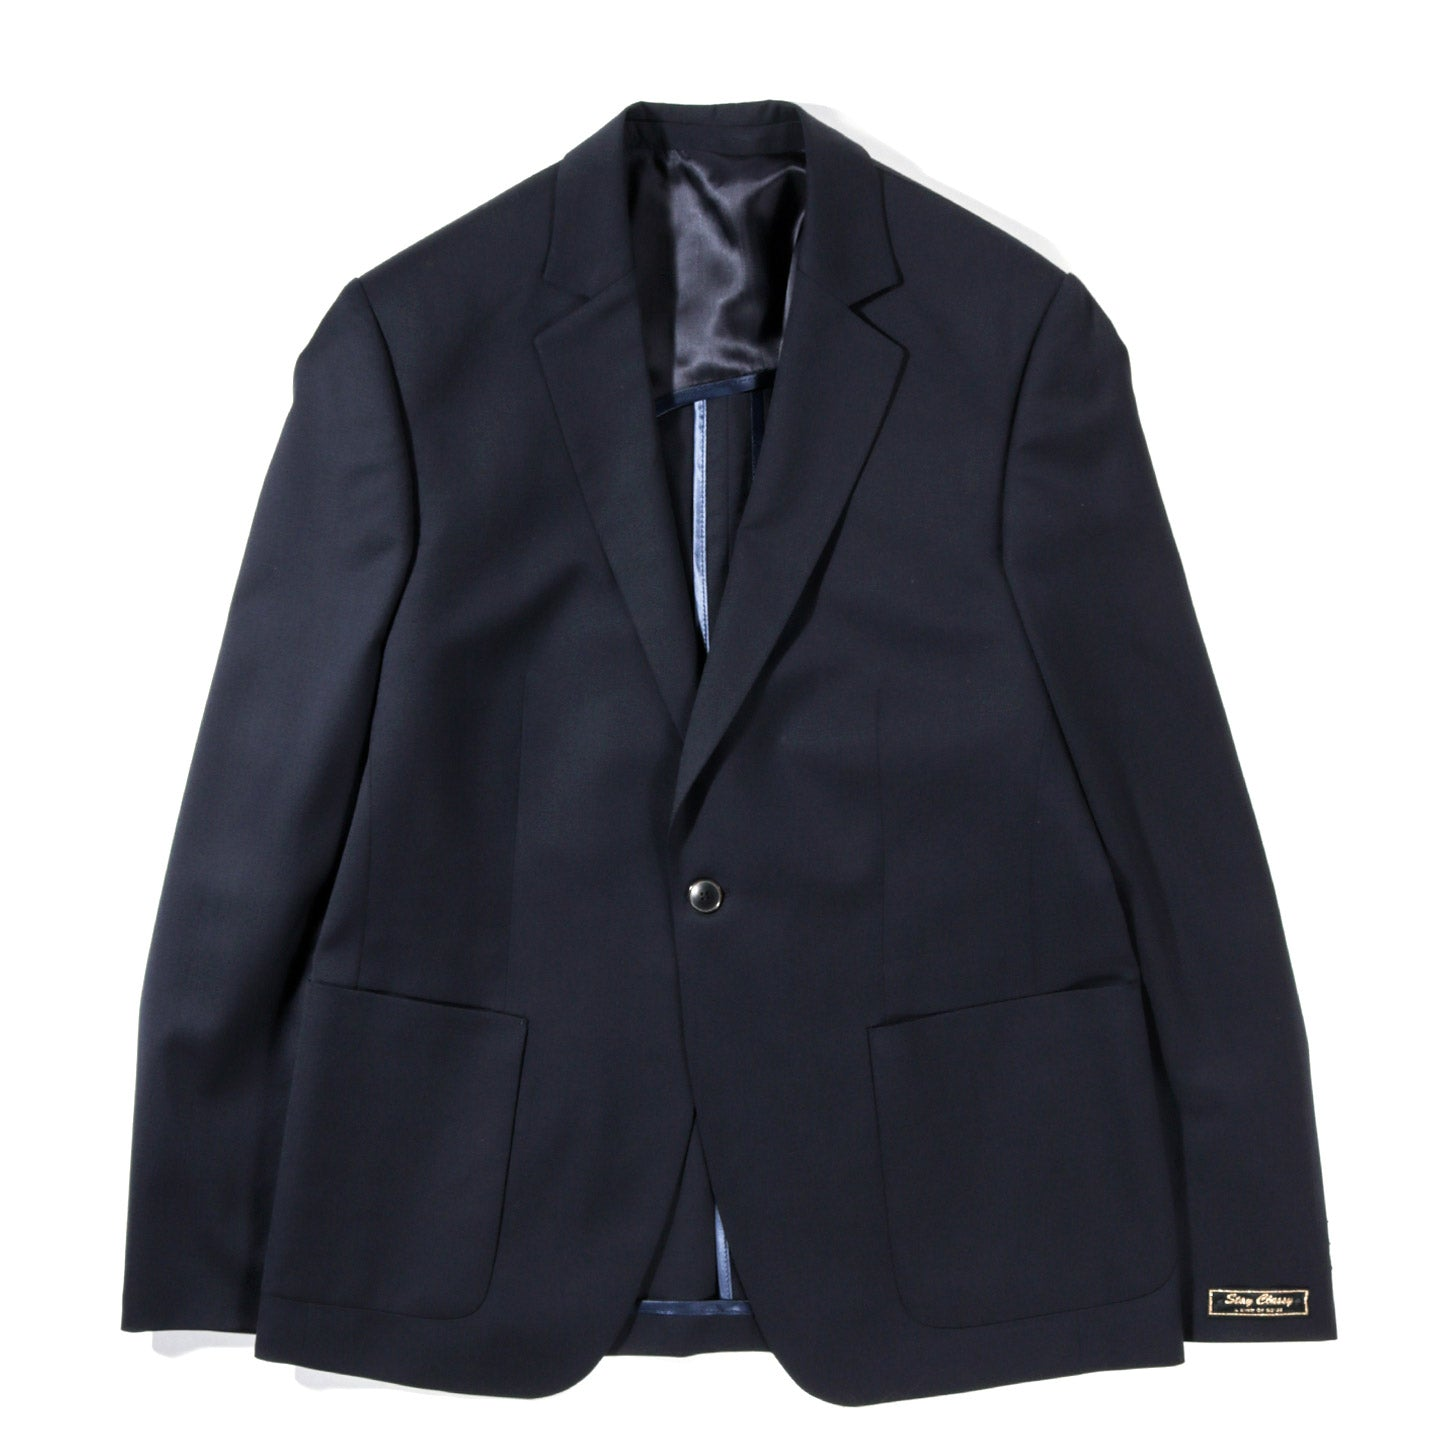 A KIND OF GUISE UNSTRUCTURED BLAZER MIDNIGHT